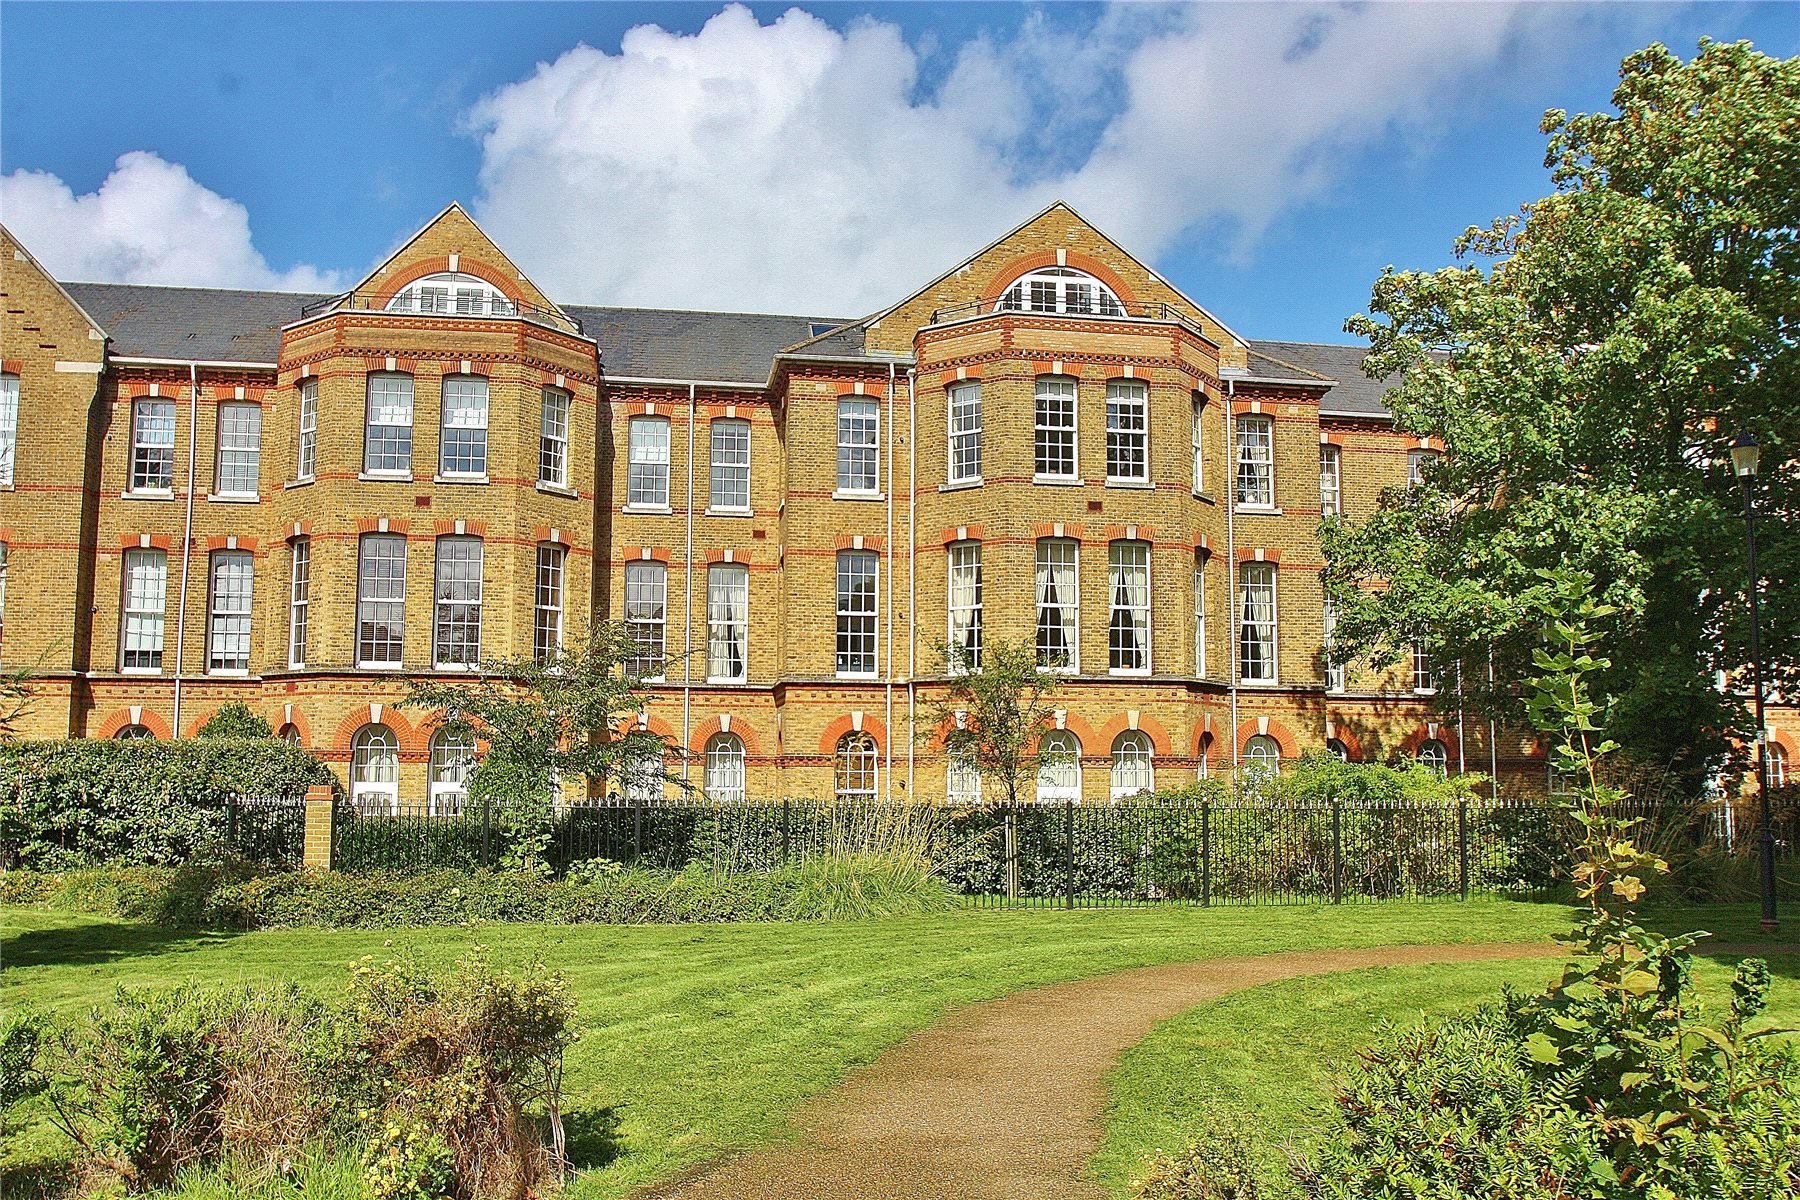 2 Bedrooms Apartment Flat for sale in Florence Court, Knaphill, GU21